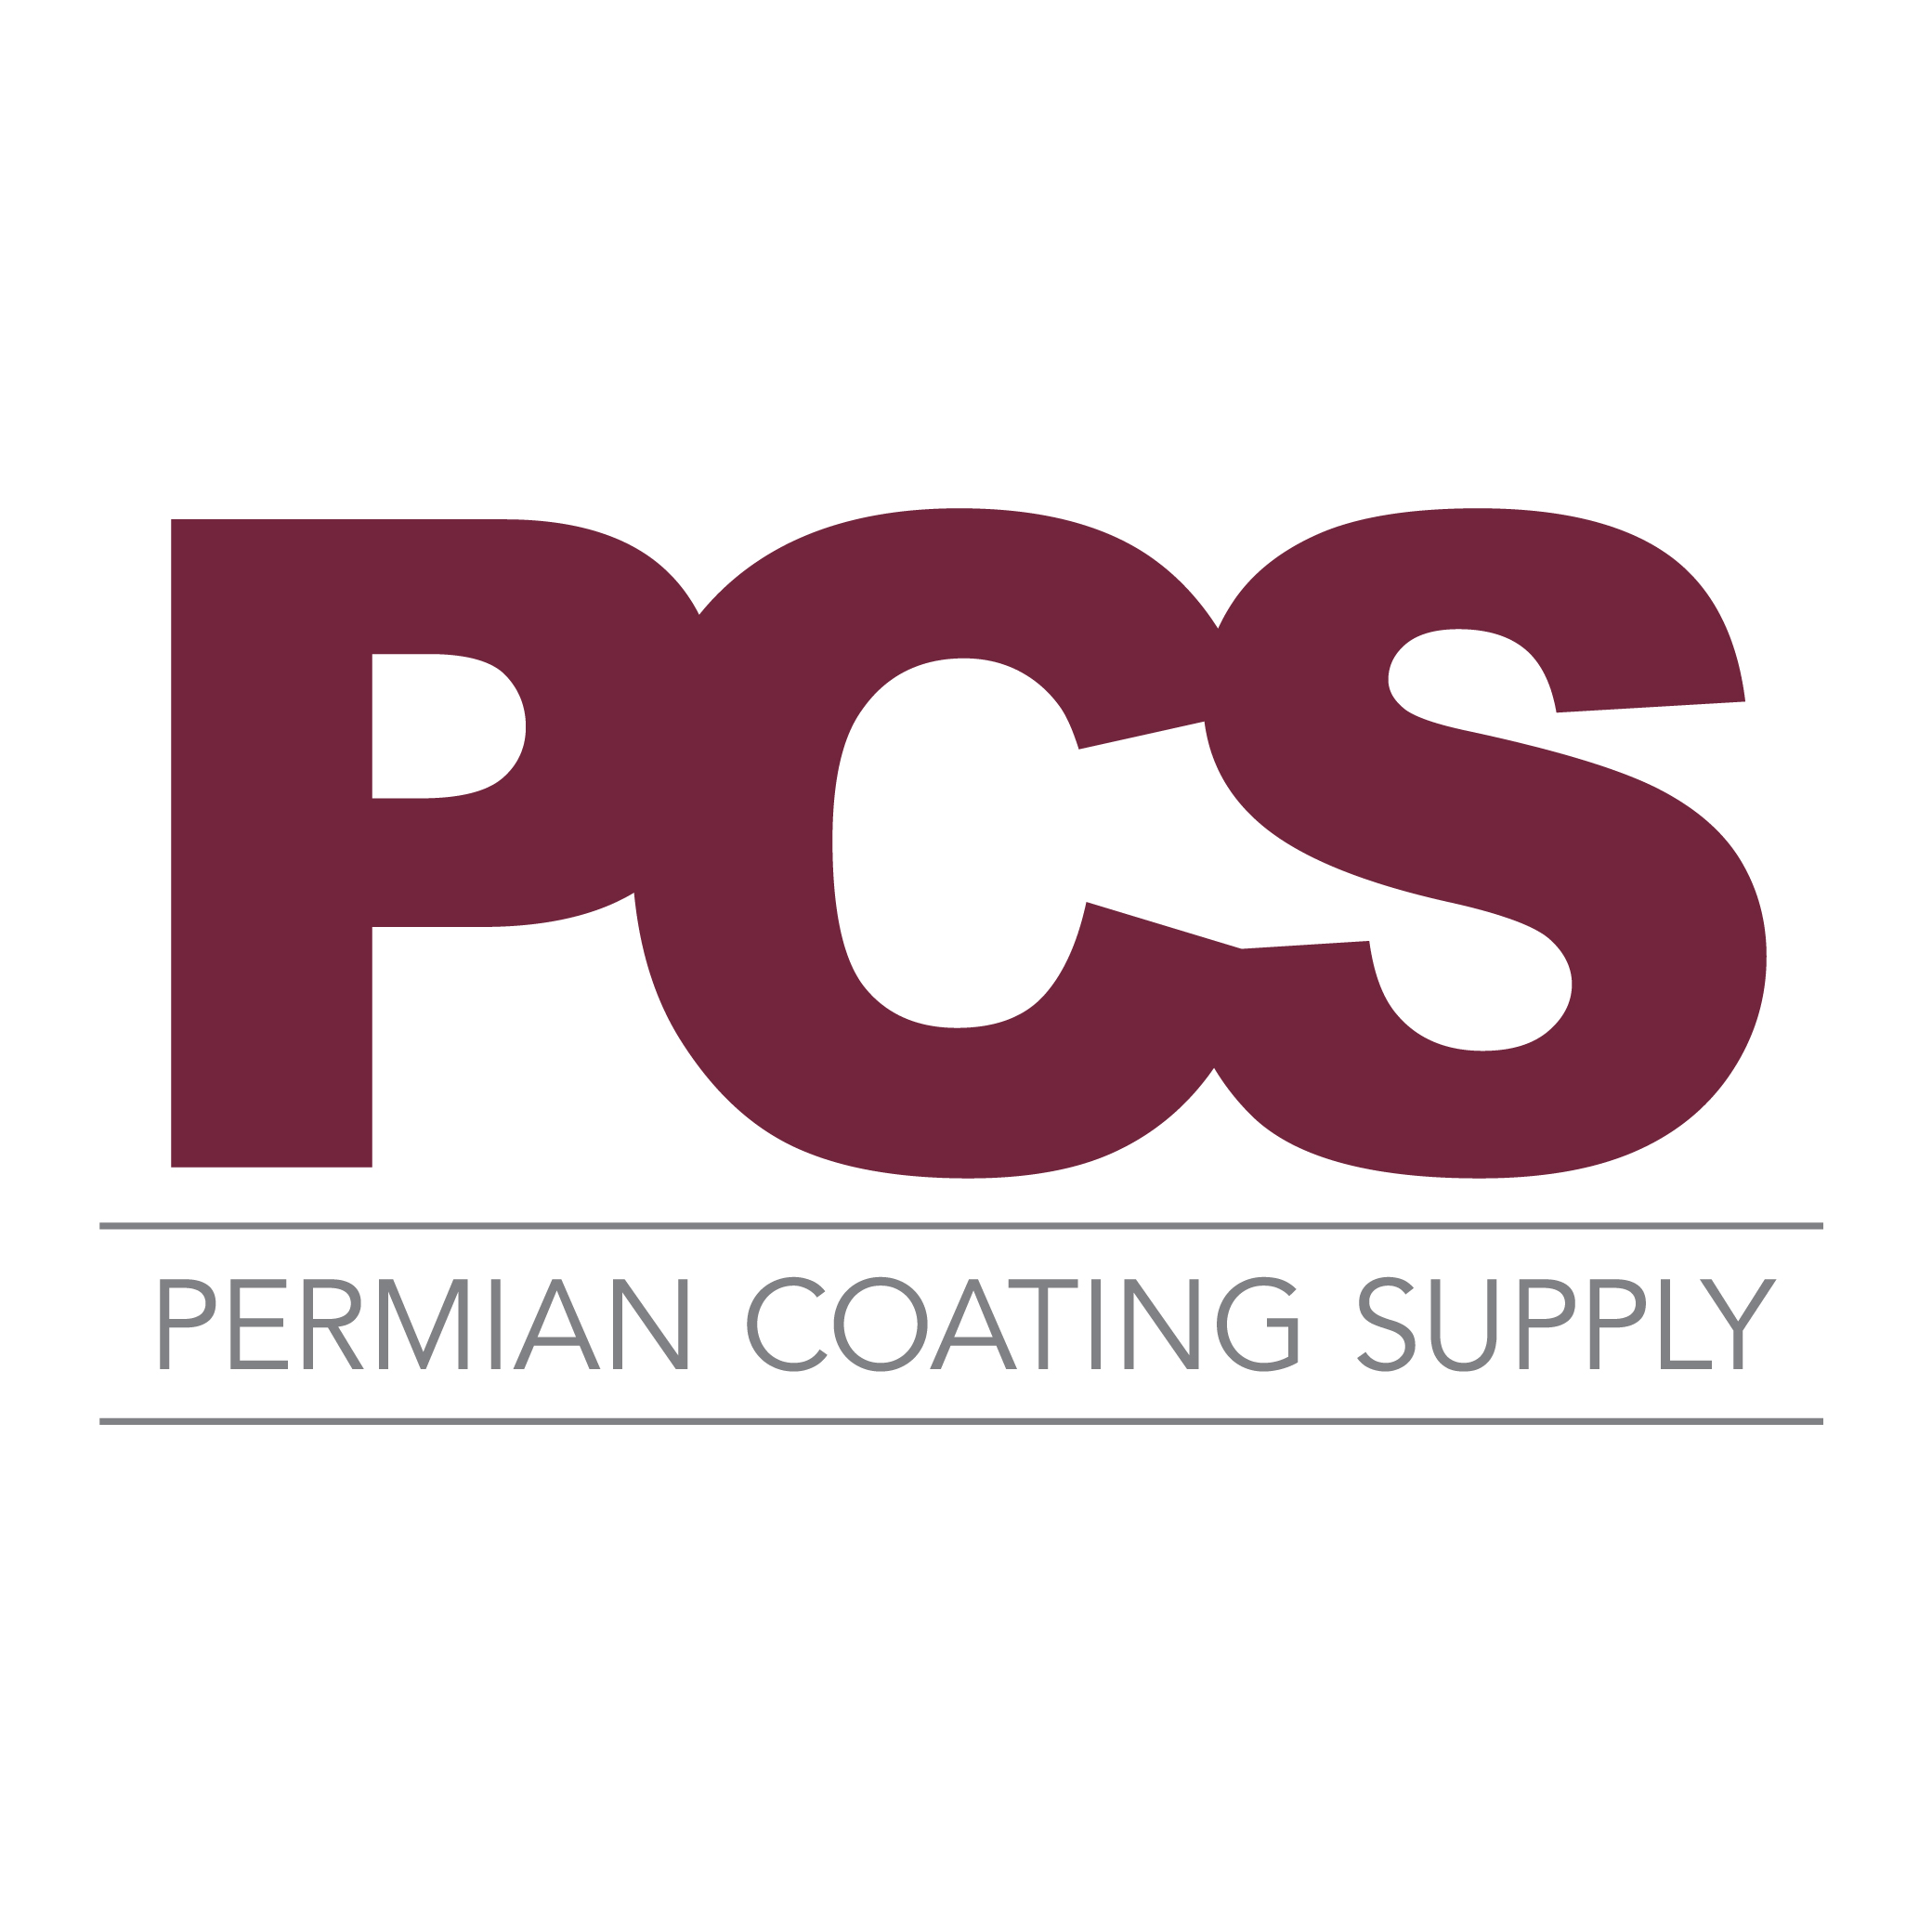 Permian Coating Supply